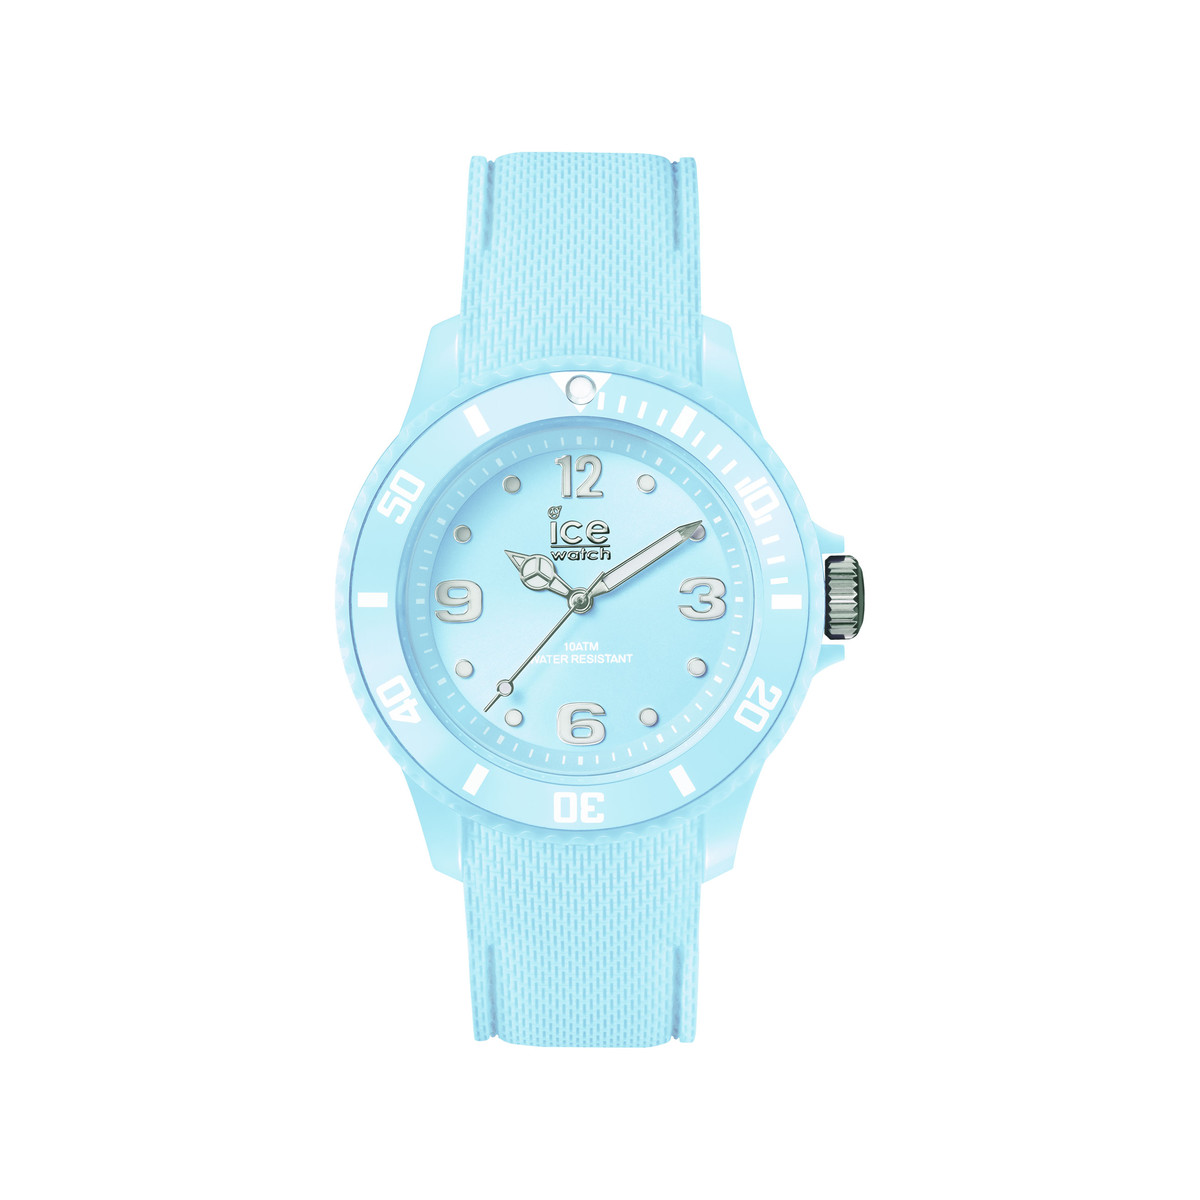 Montre Ice Watch femme silicone bleu pastel